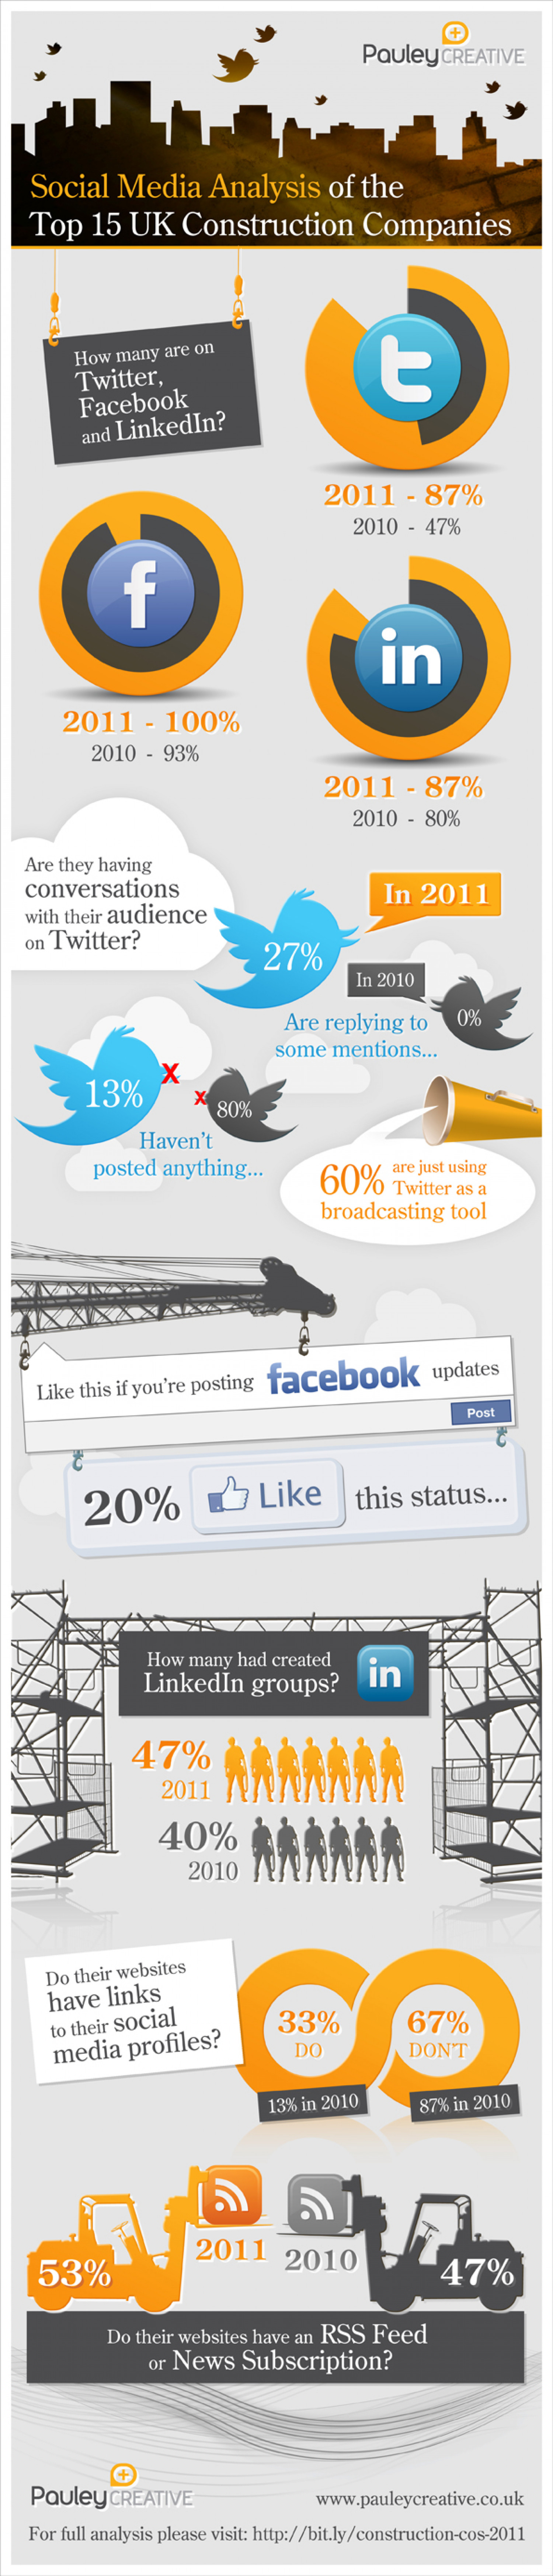 Social Media Analysis of how the Top 15 UK Construction Companies are using Social Media Infographic